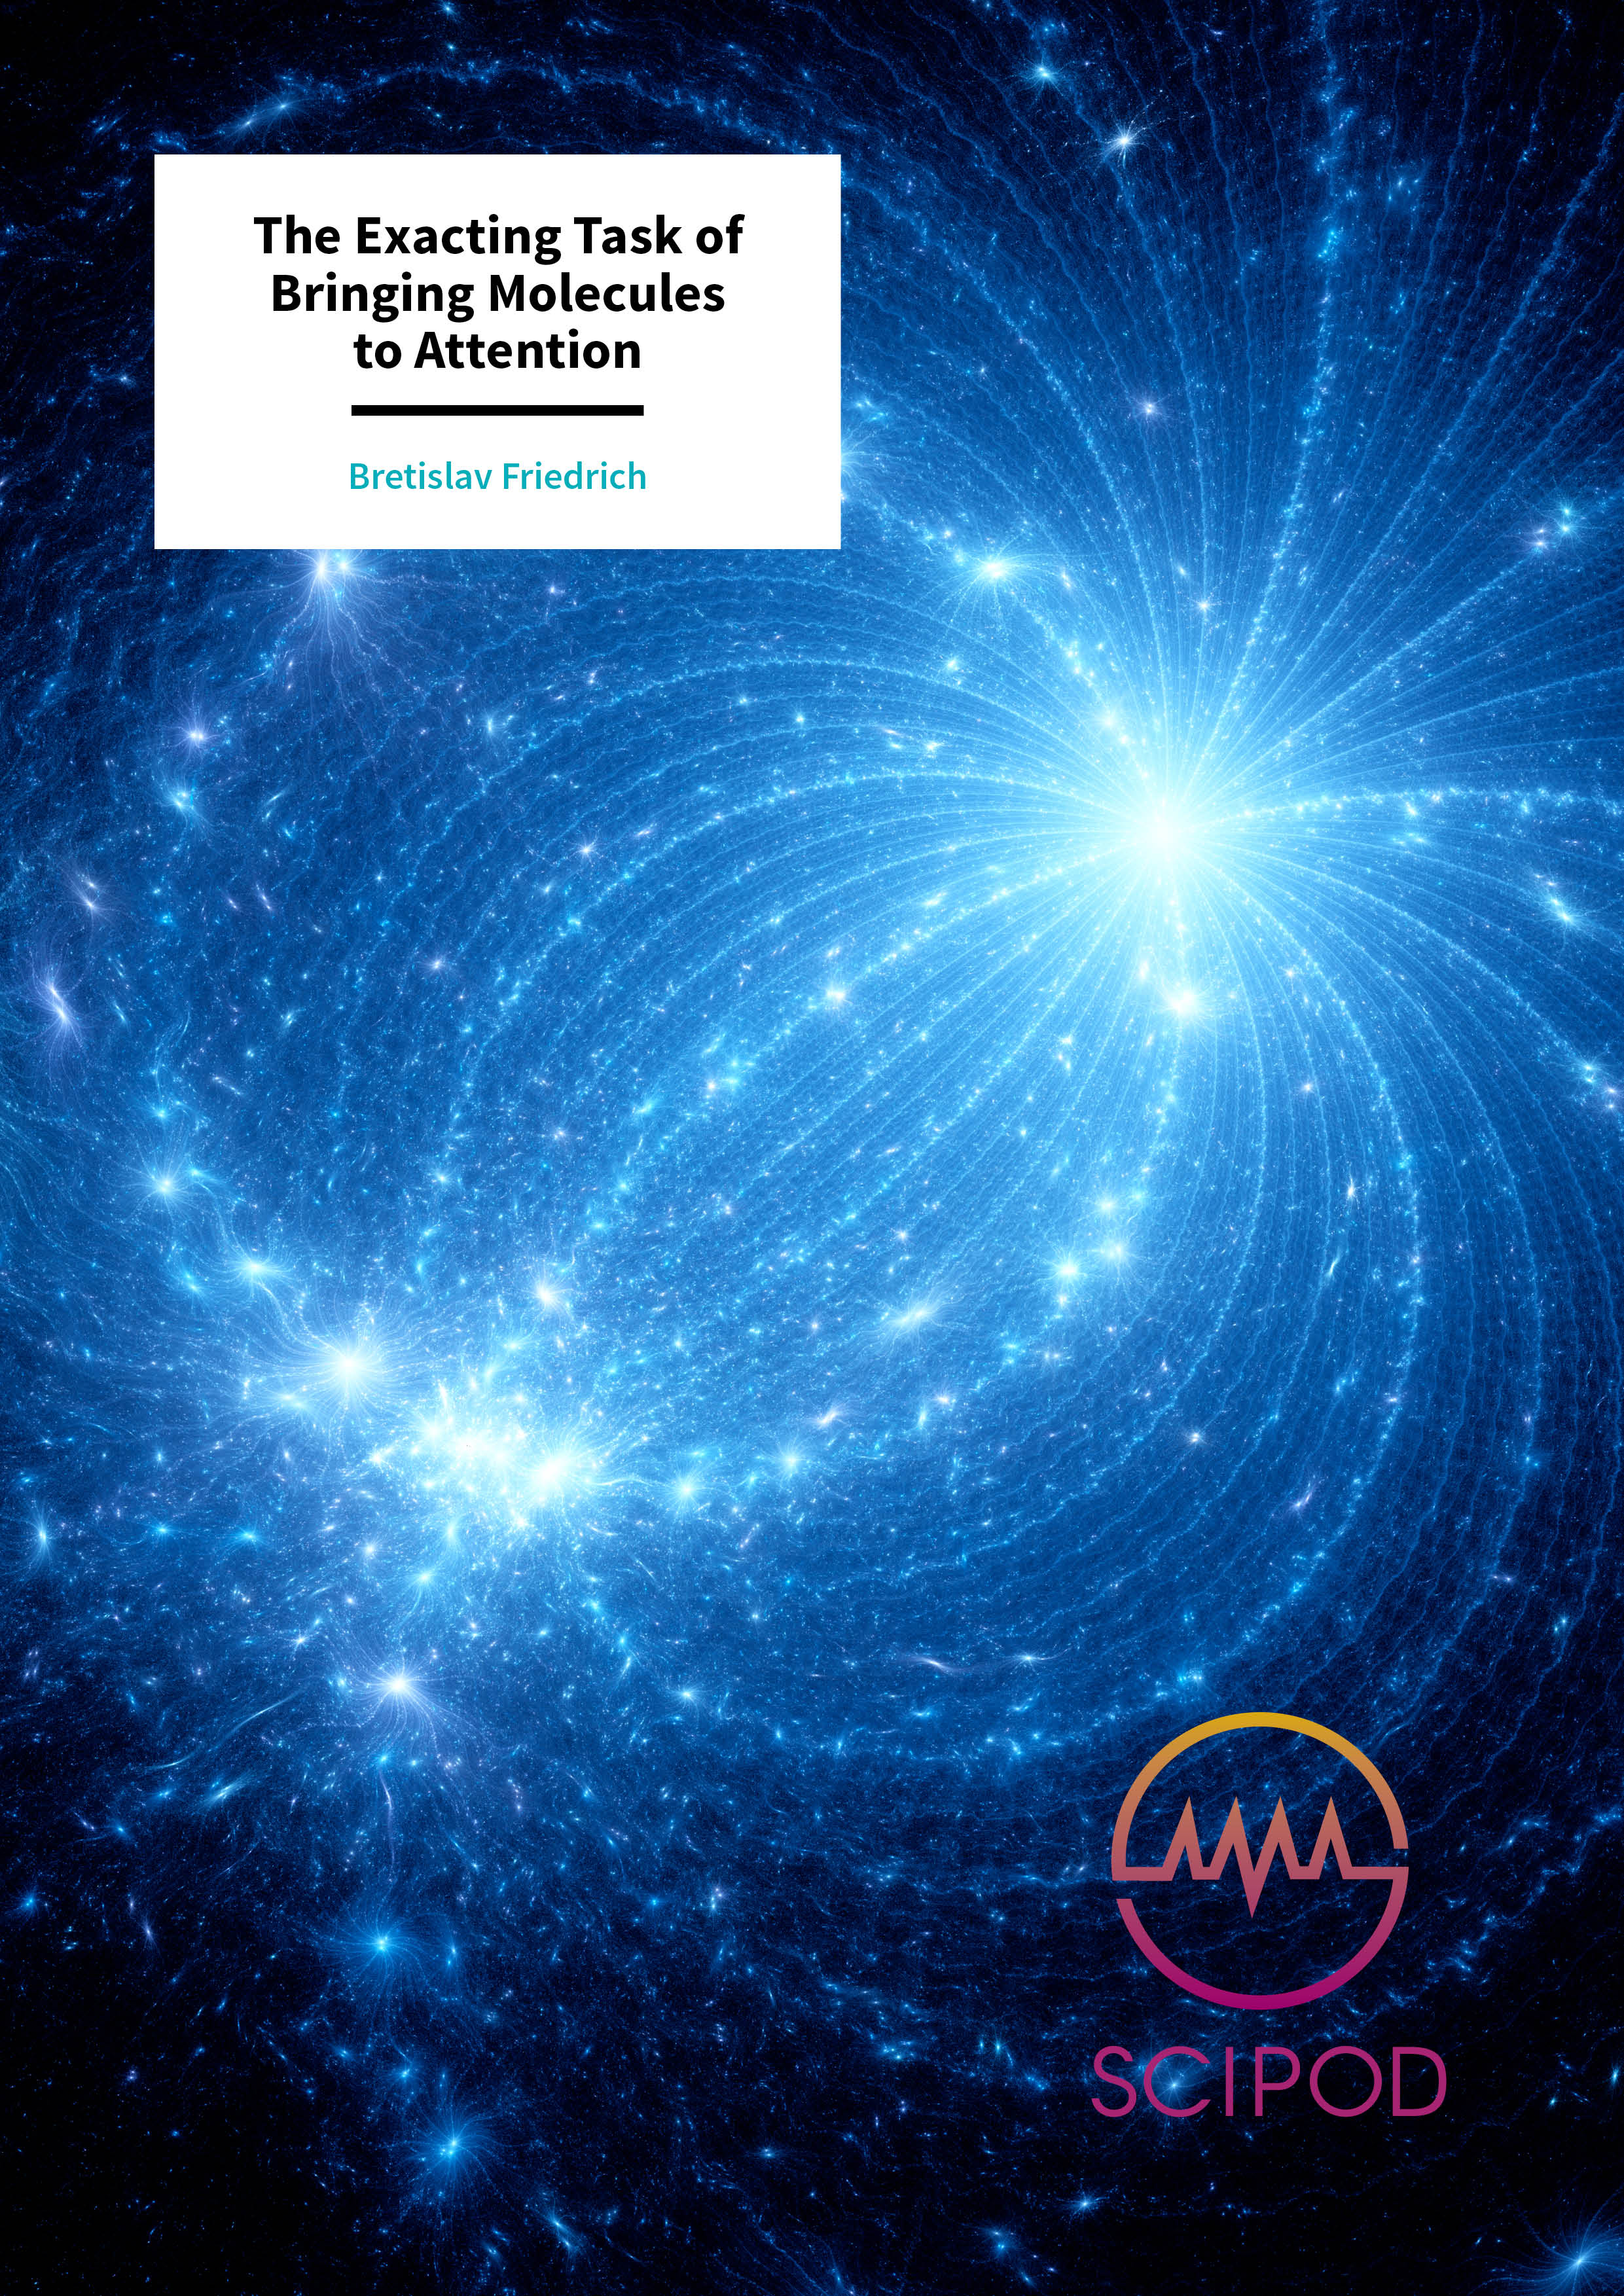 The Exacting Task of Bringing Molecules to Attention – Bretislav Friedrich, Fritz Haber Institute of the Max Planck Society